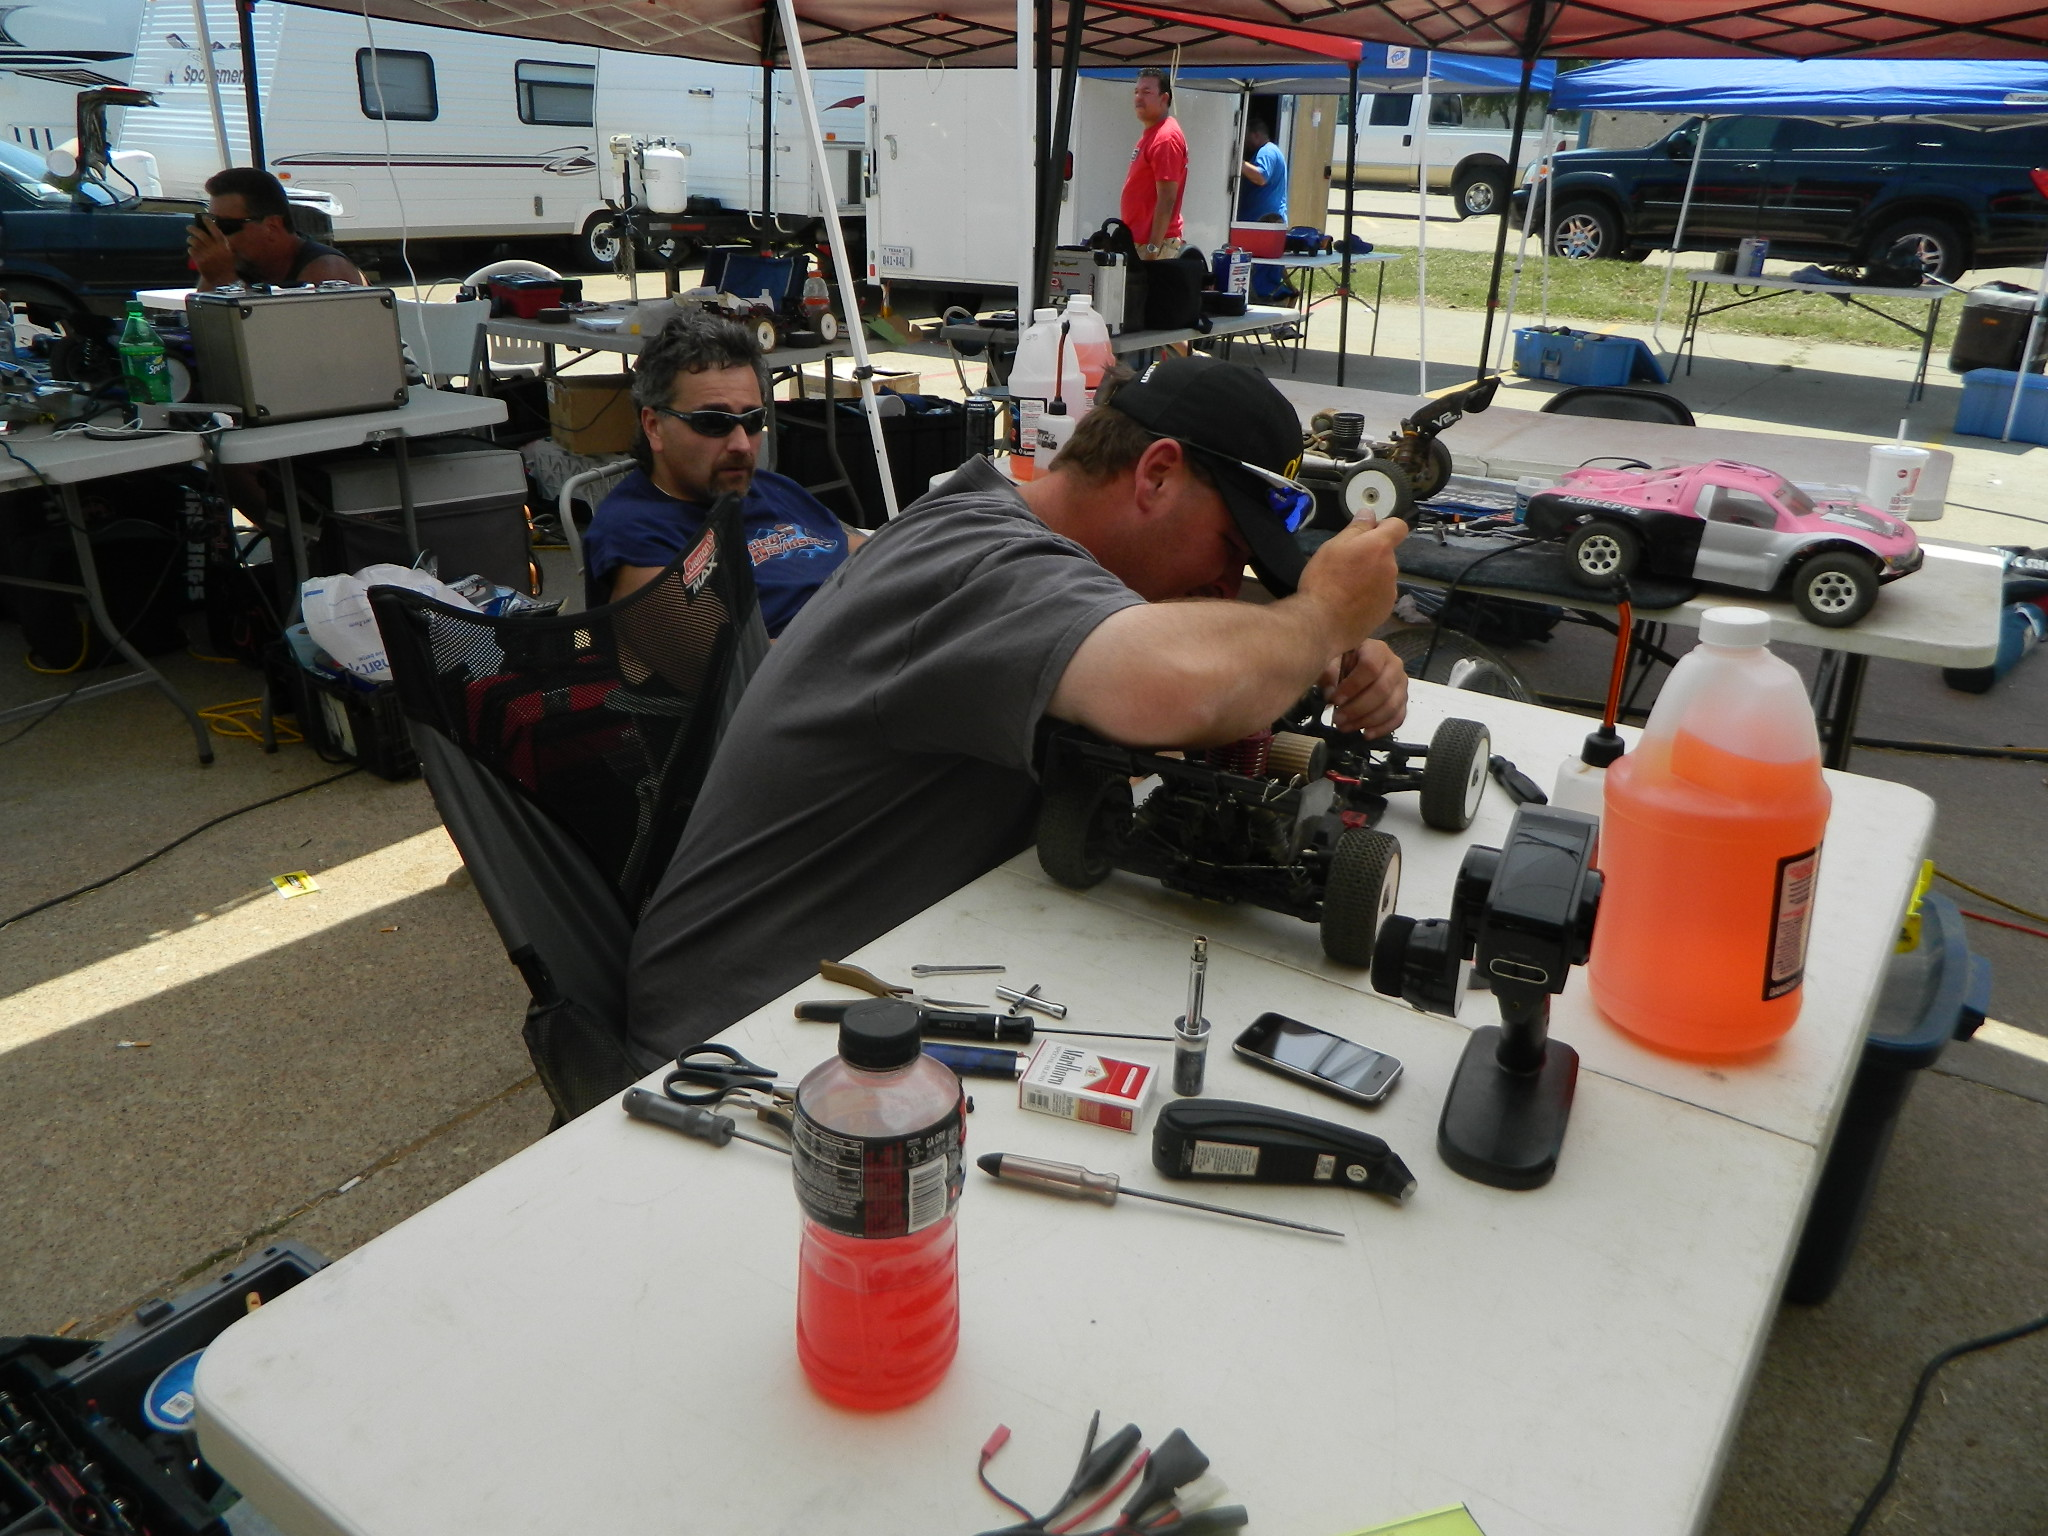 You are browsing images from the article: RCPro Texas Series 2012